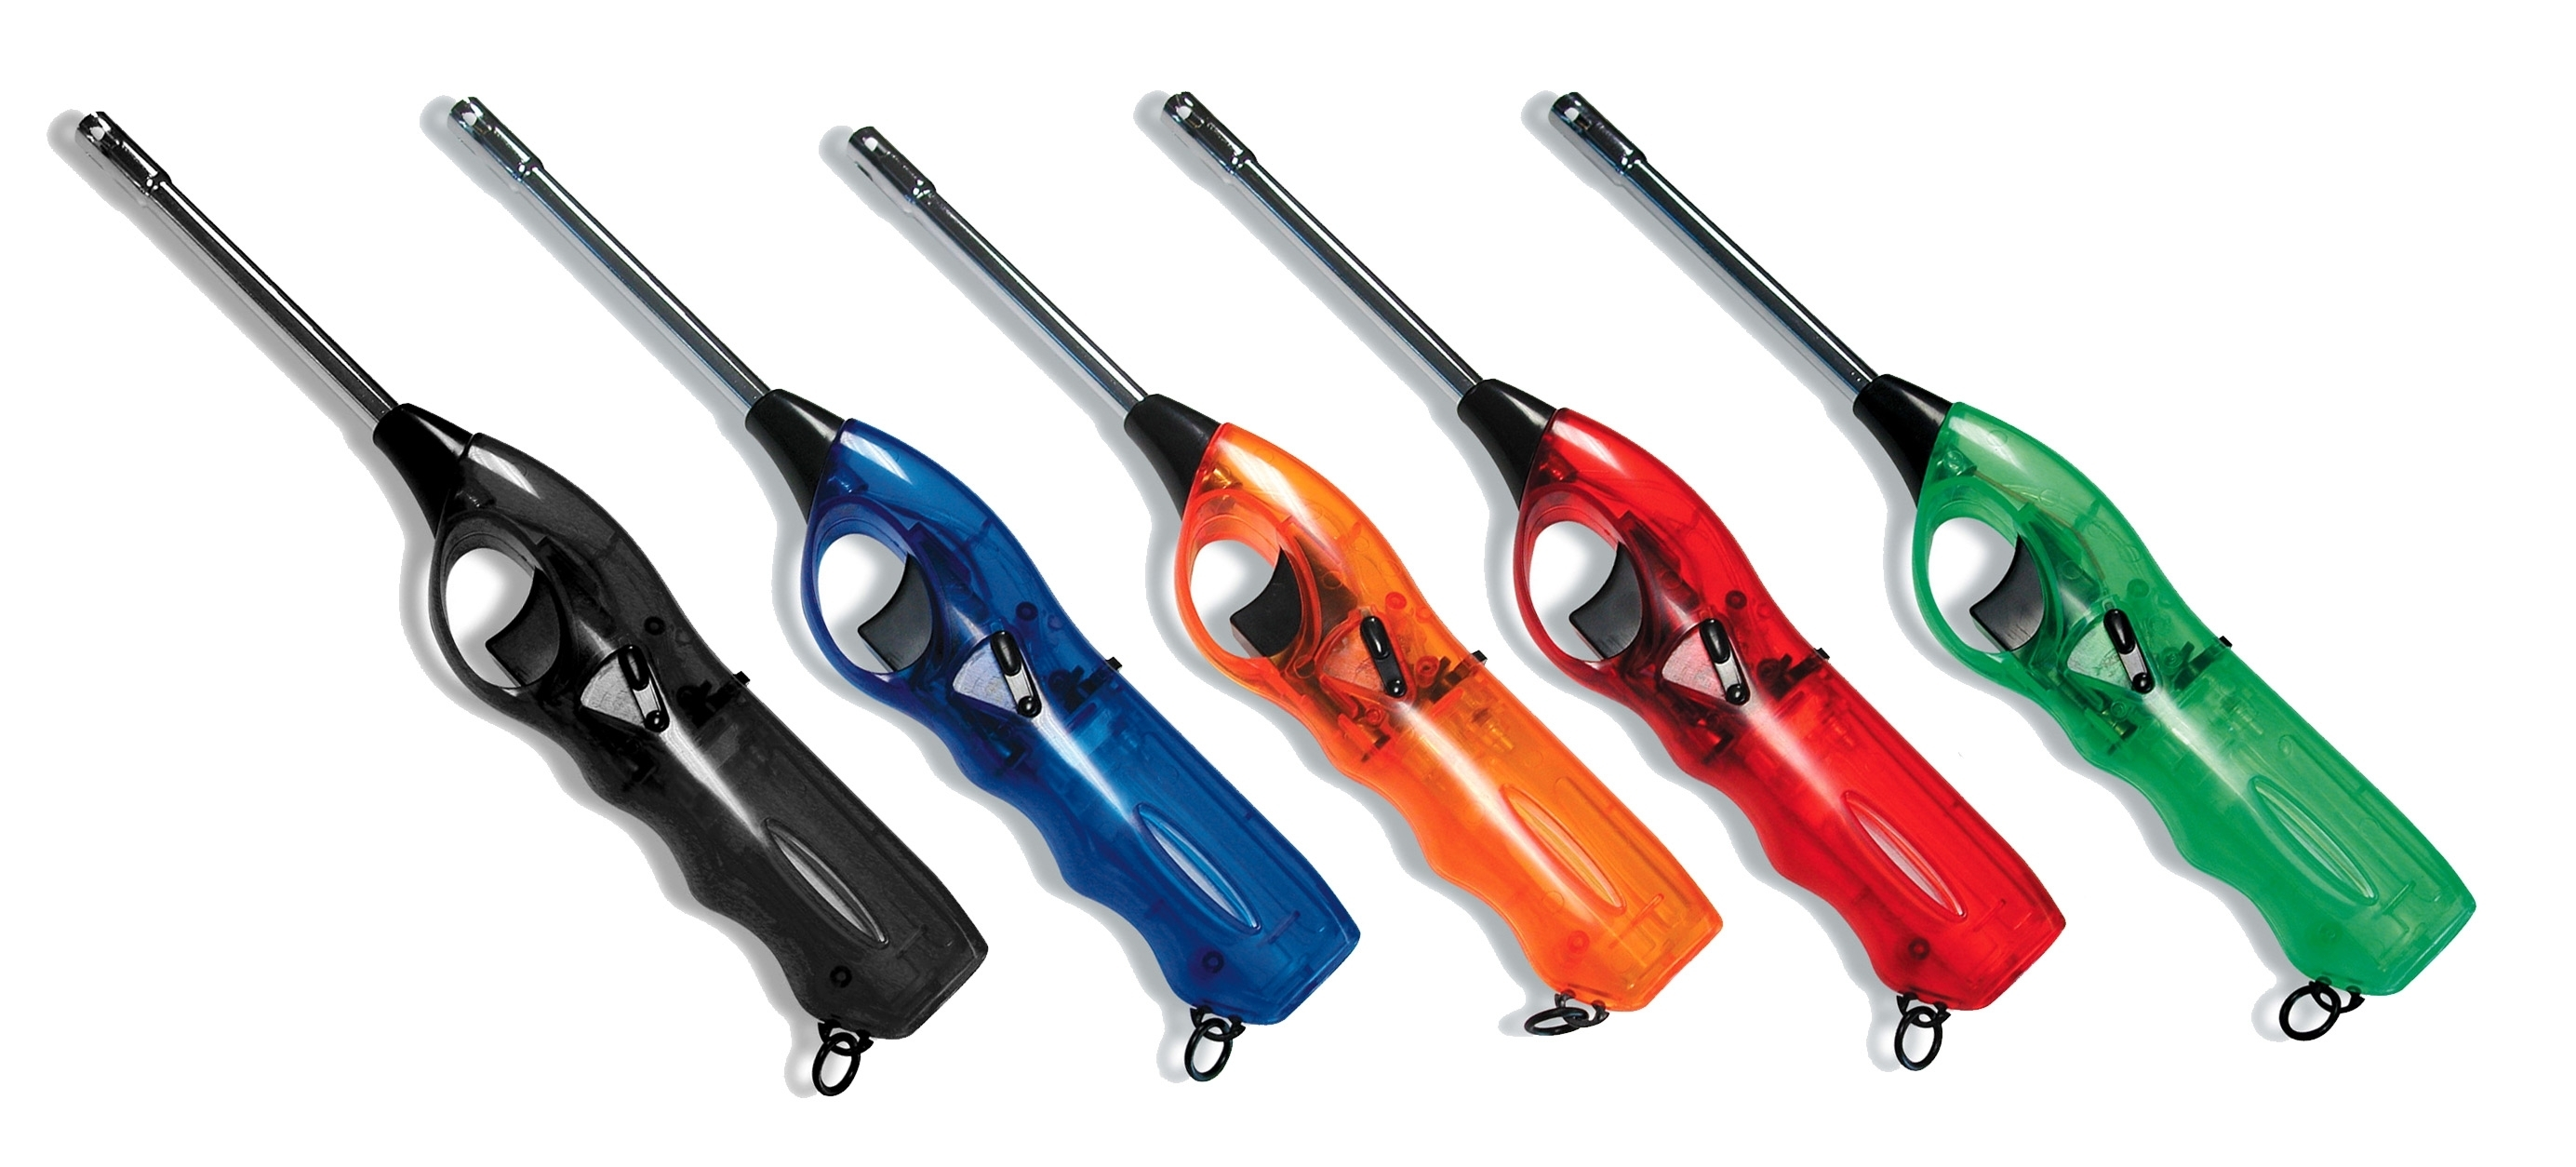 Picture of Lighters with Blue, red, orange, black or green Body